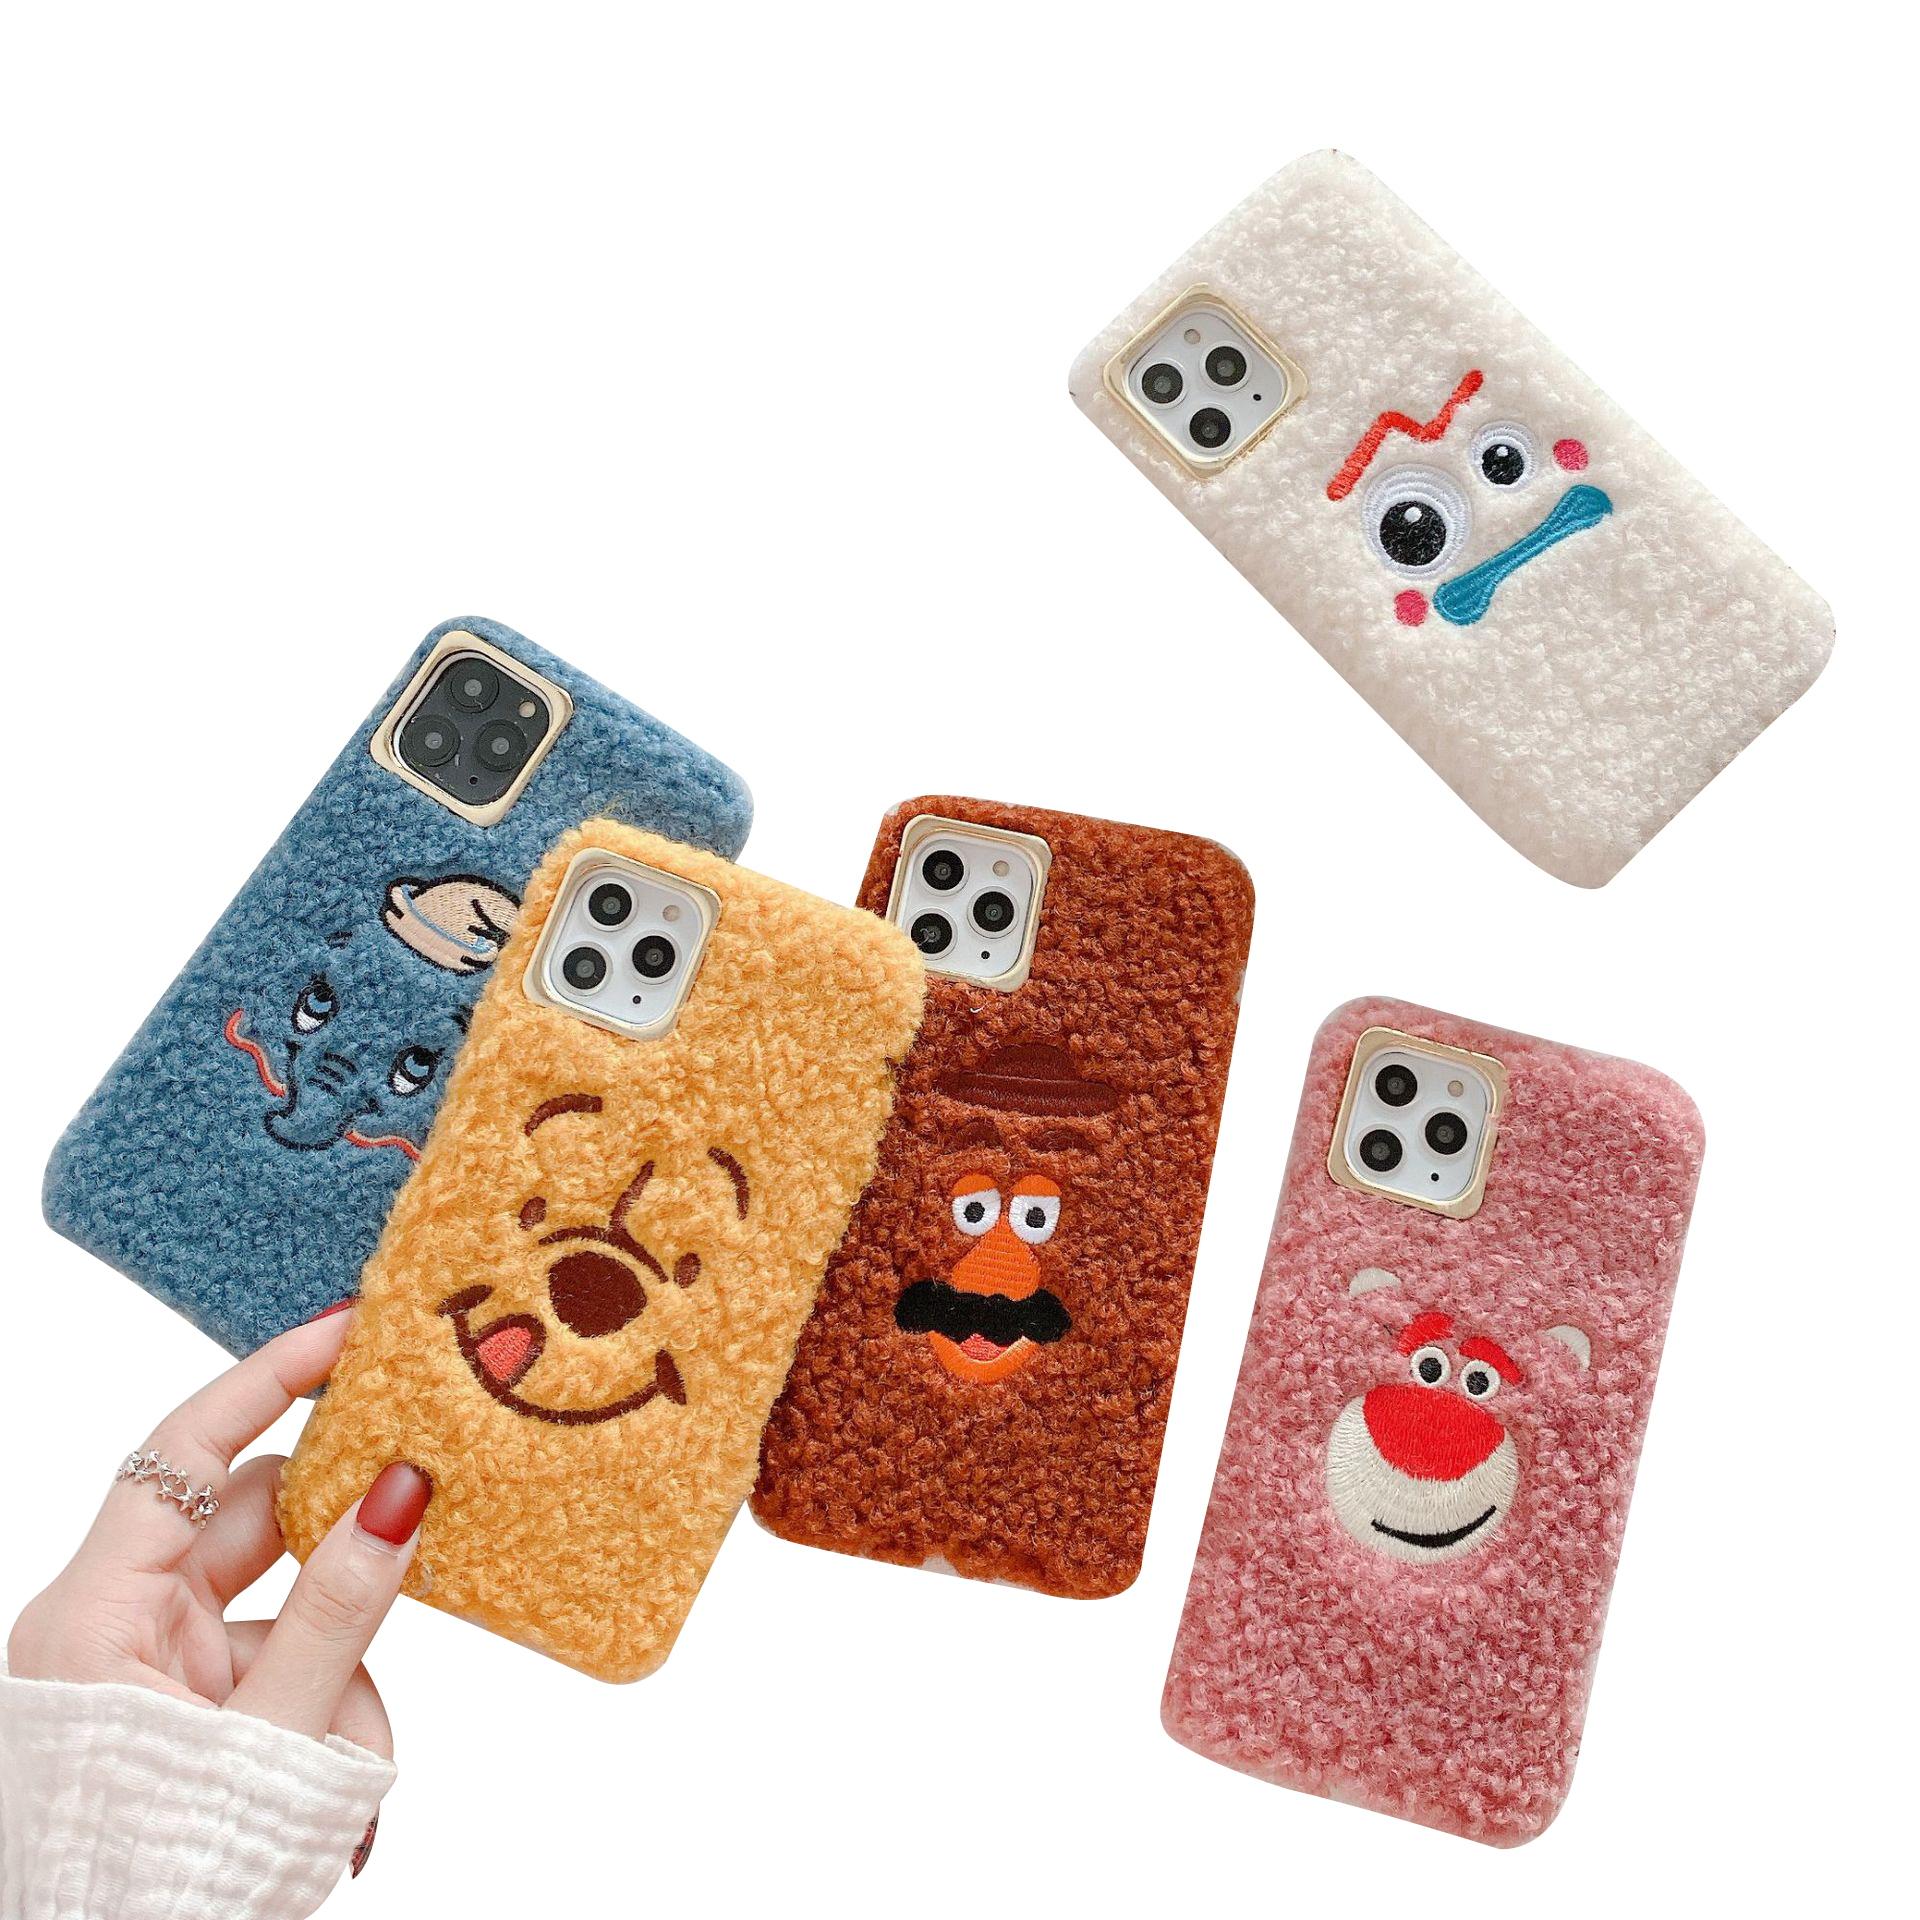 Phone cover Cartoon Toy story4 Fork Pooh Potato head cookie plush fluffy Soft Hairy phone case for iPhone xs/xs max/<strong>11</strong>/11pro max